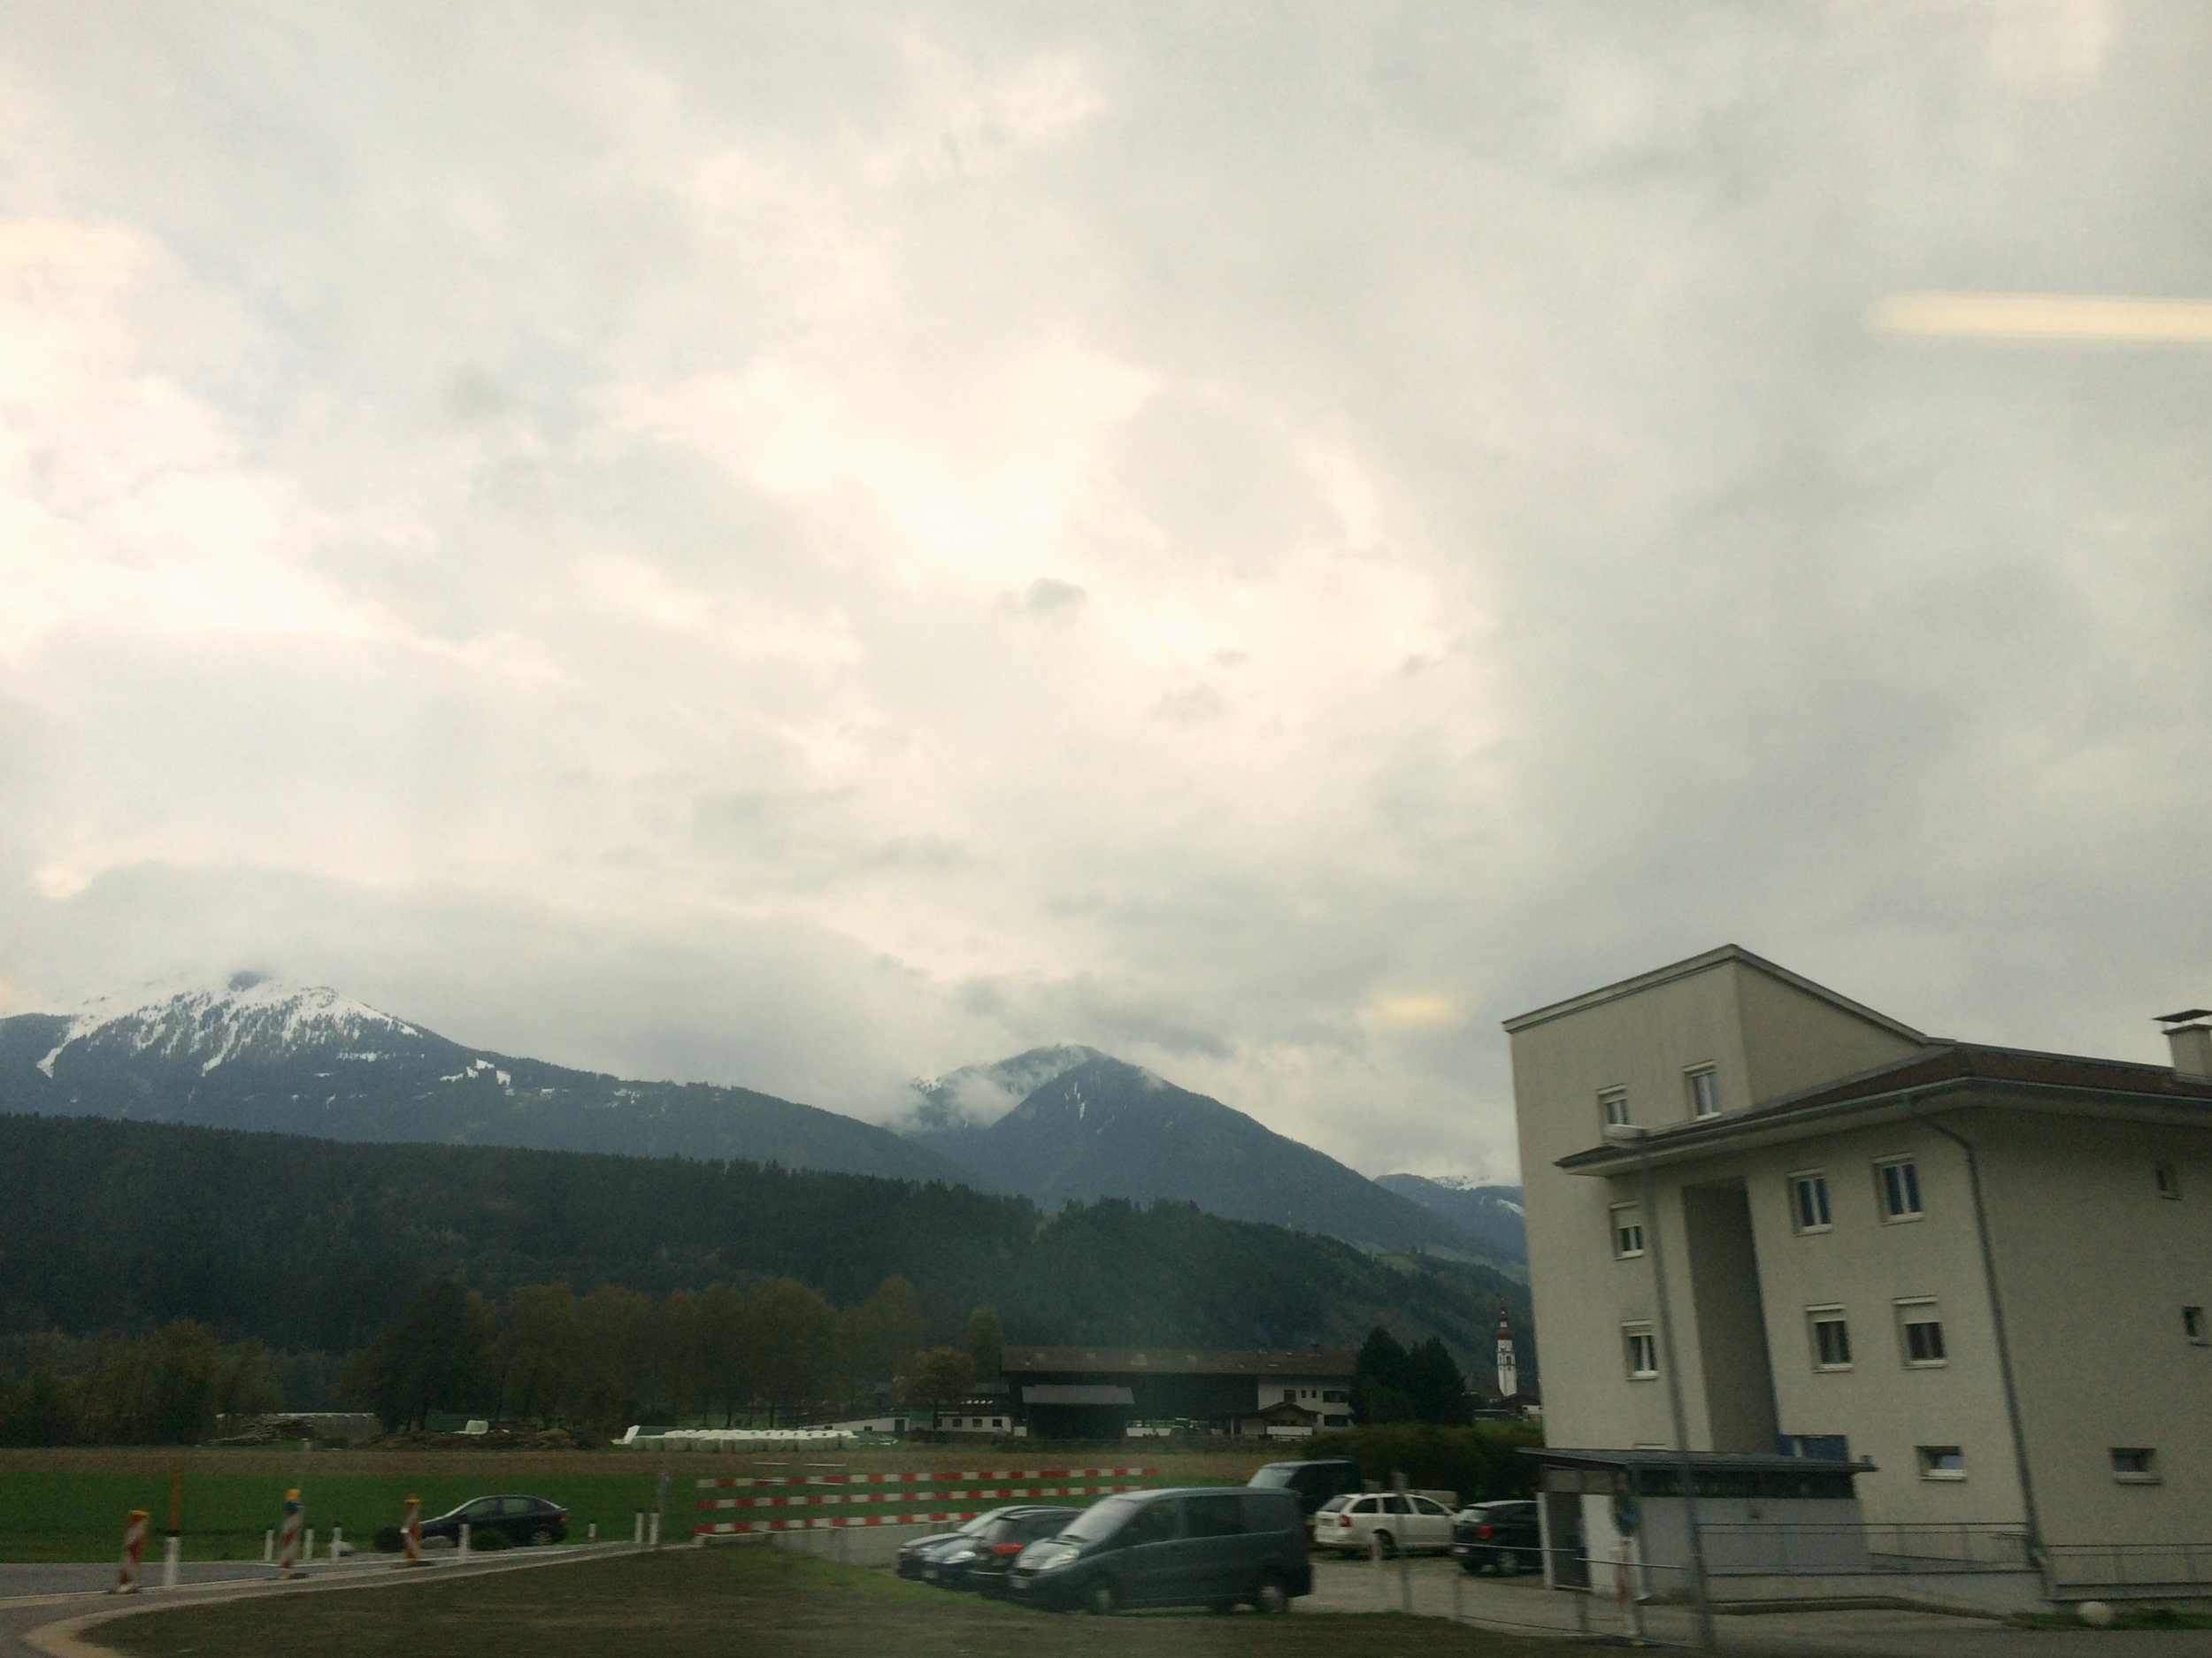 """More Alps. If you say """"Alps"""" a ton of times in a row, it sort of drives you insane. Alps alps alps alps alps alps...."""